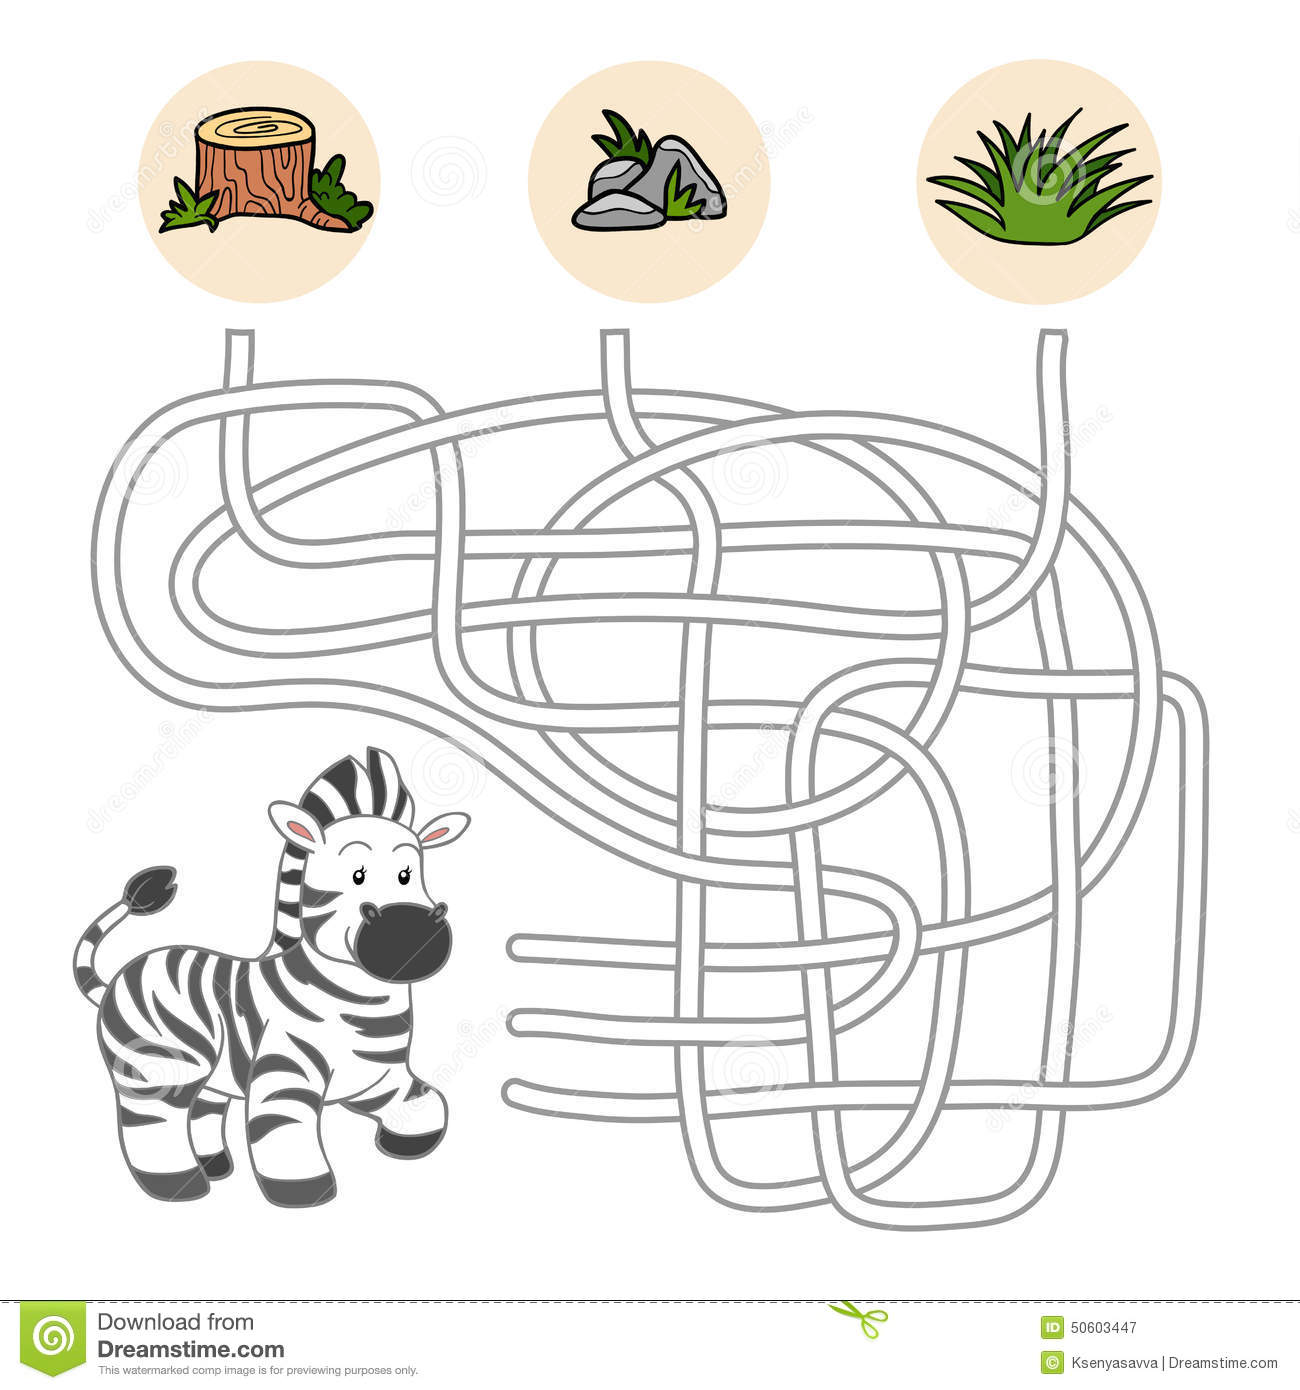 Maze game for children (zebra).